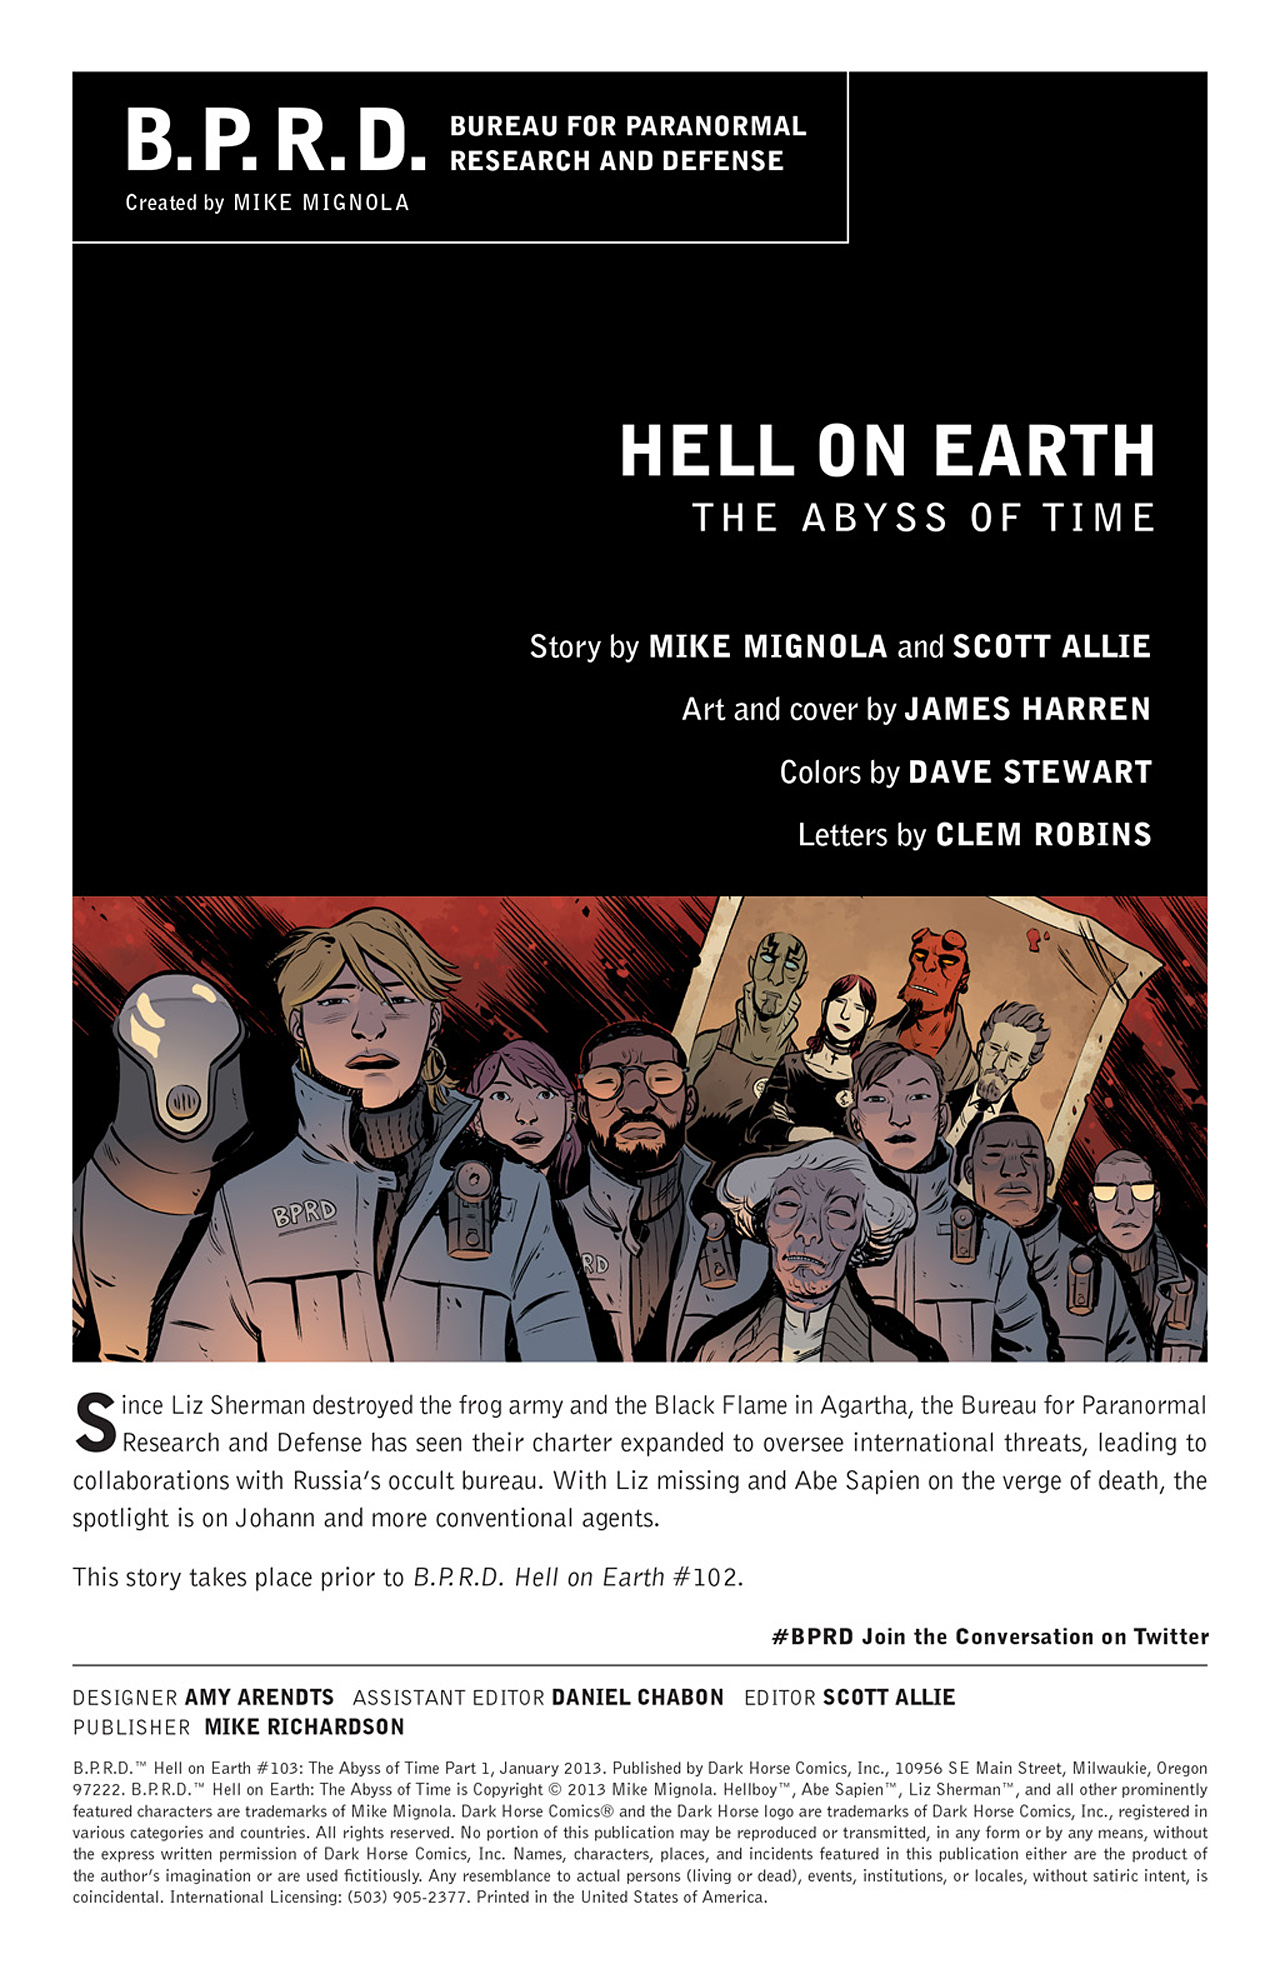 Read online B.P.R.D. Hell on Earth: The Abyss of Time comic -  Issue #103 - 2